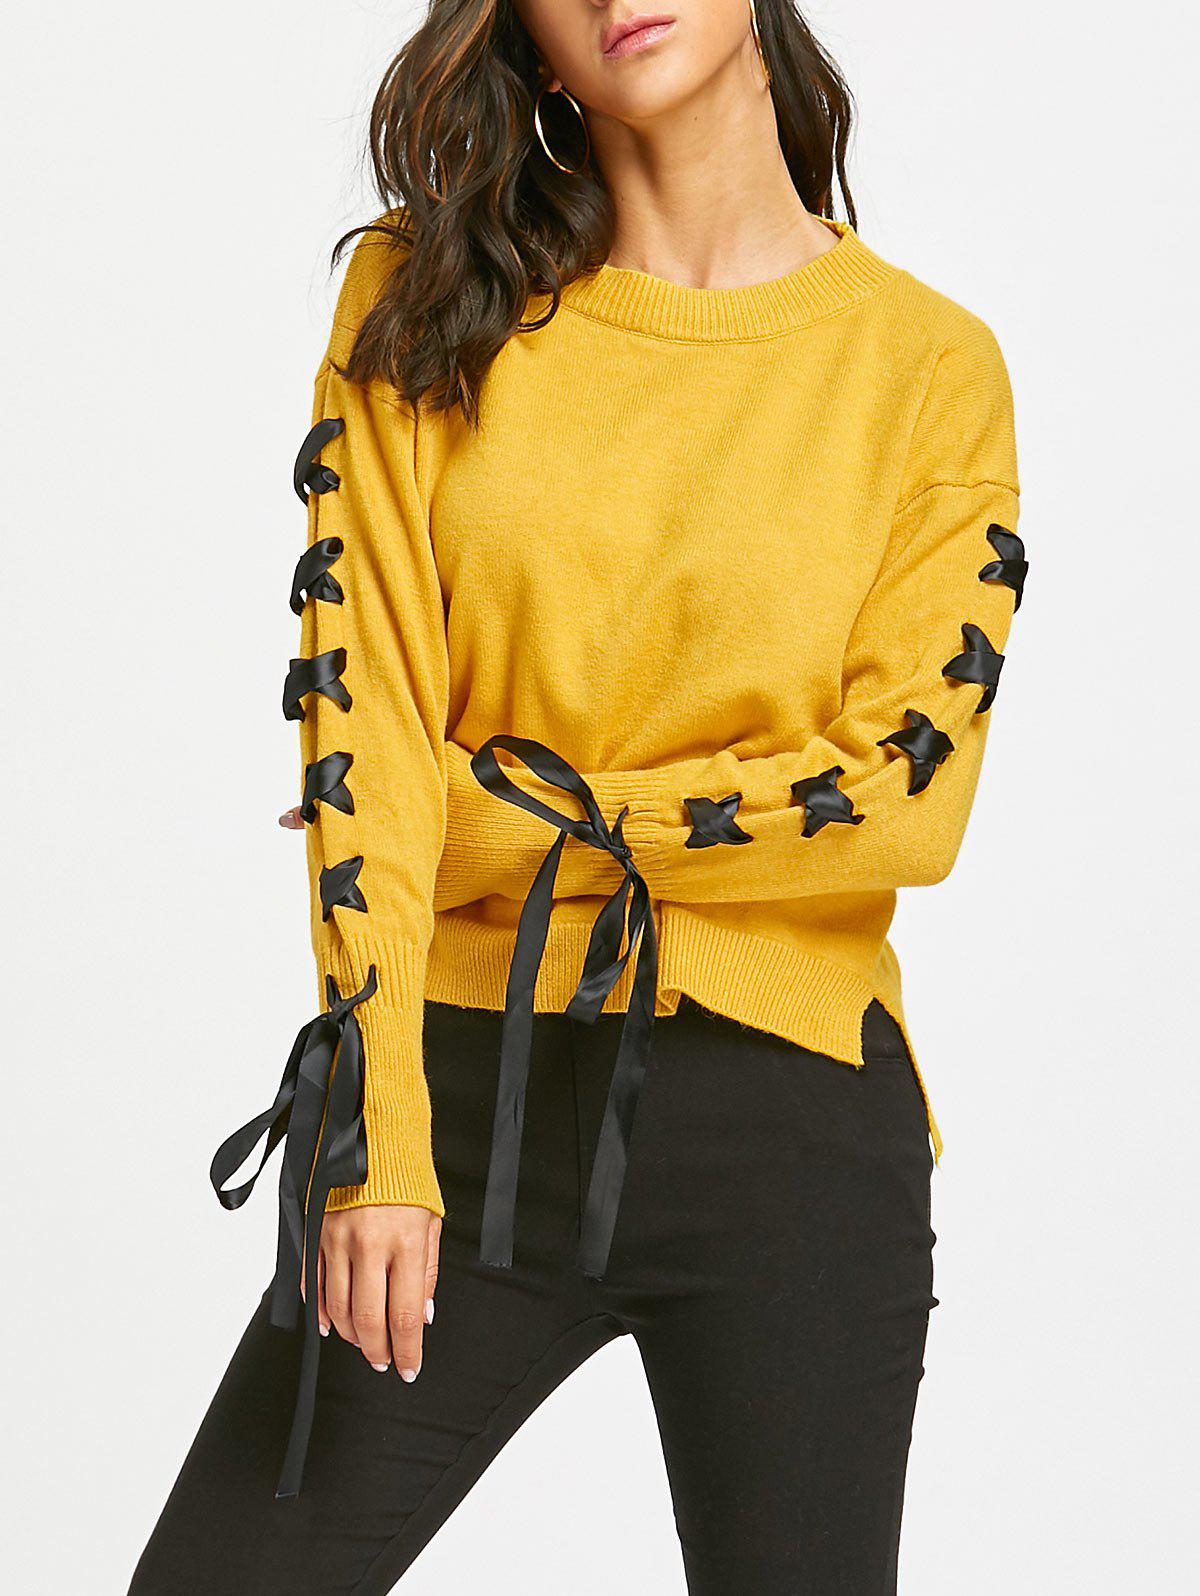 High Low Lace Up Drop Shoulder SweaterWOMEN<br><br>Size: ONE SIZE; Color: YELLOW; Type: Pullovers; Material: Acrylic; Sleeve Length: Full; Collar: Crew Neck; Style: Casual; Pattern Type: Solid; Embellishment: Bowknot,Lace up; Season: Fall,Spring,Winter; Weight: 0.5500kg; Package Contents: 1 x Sweater;